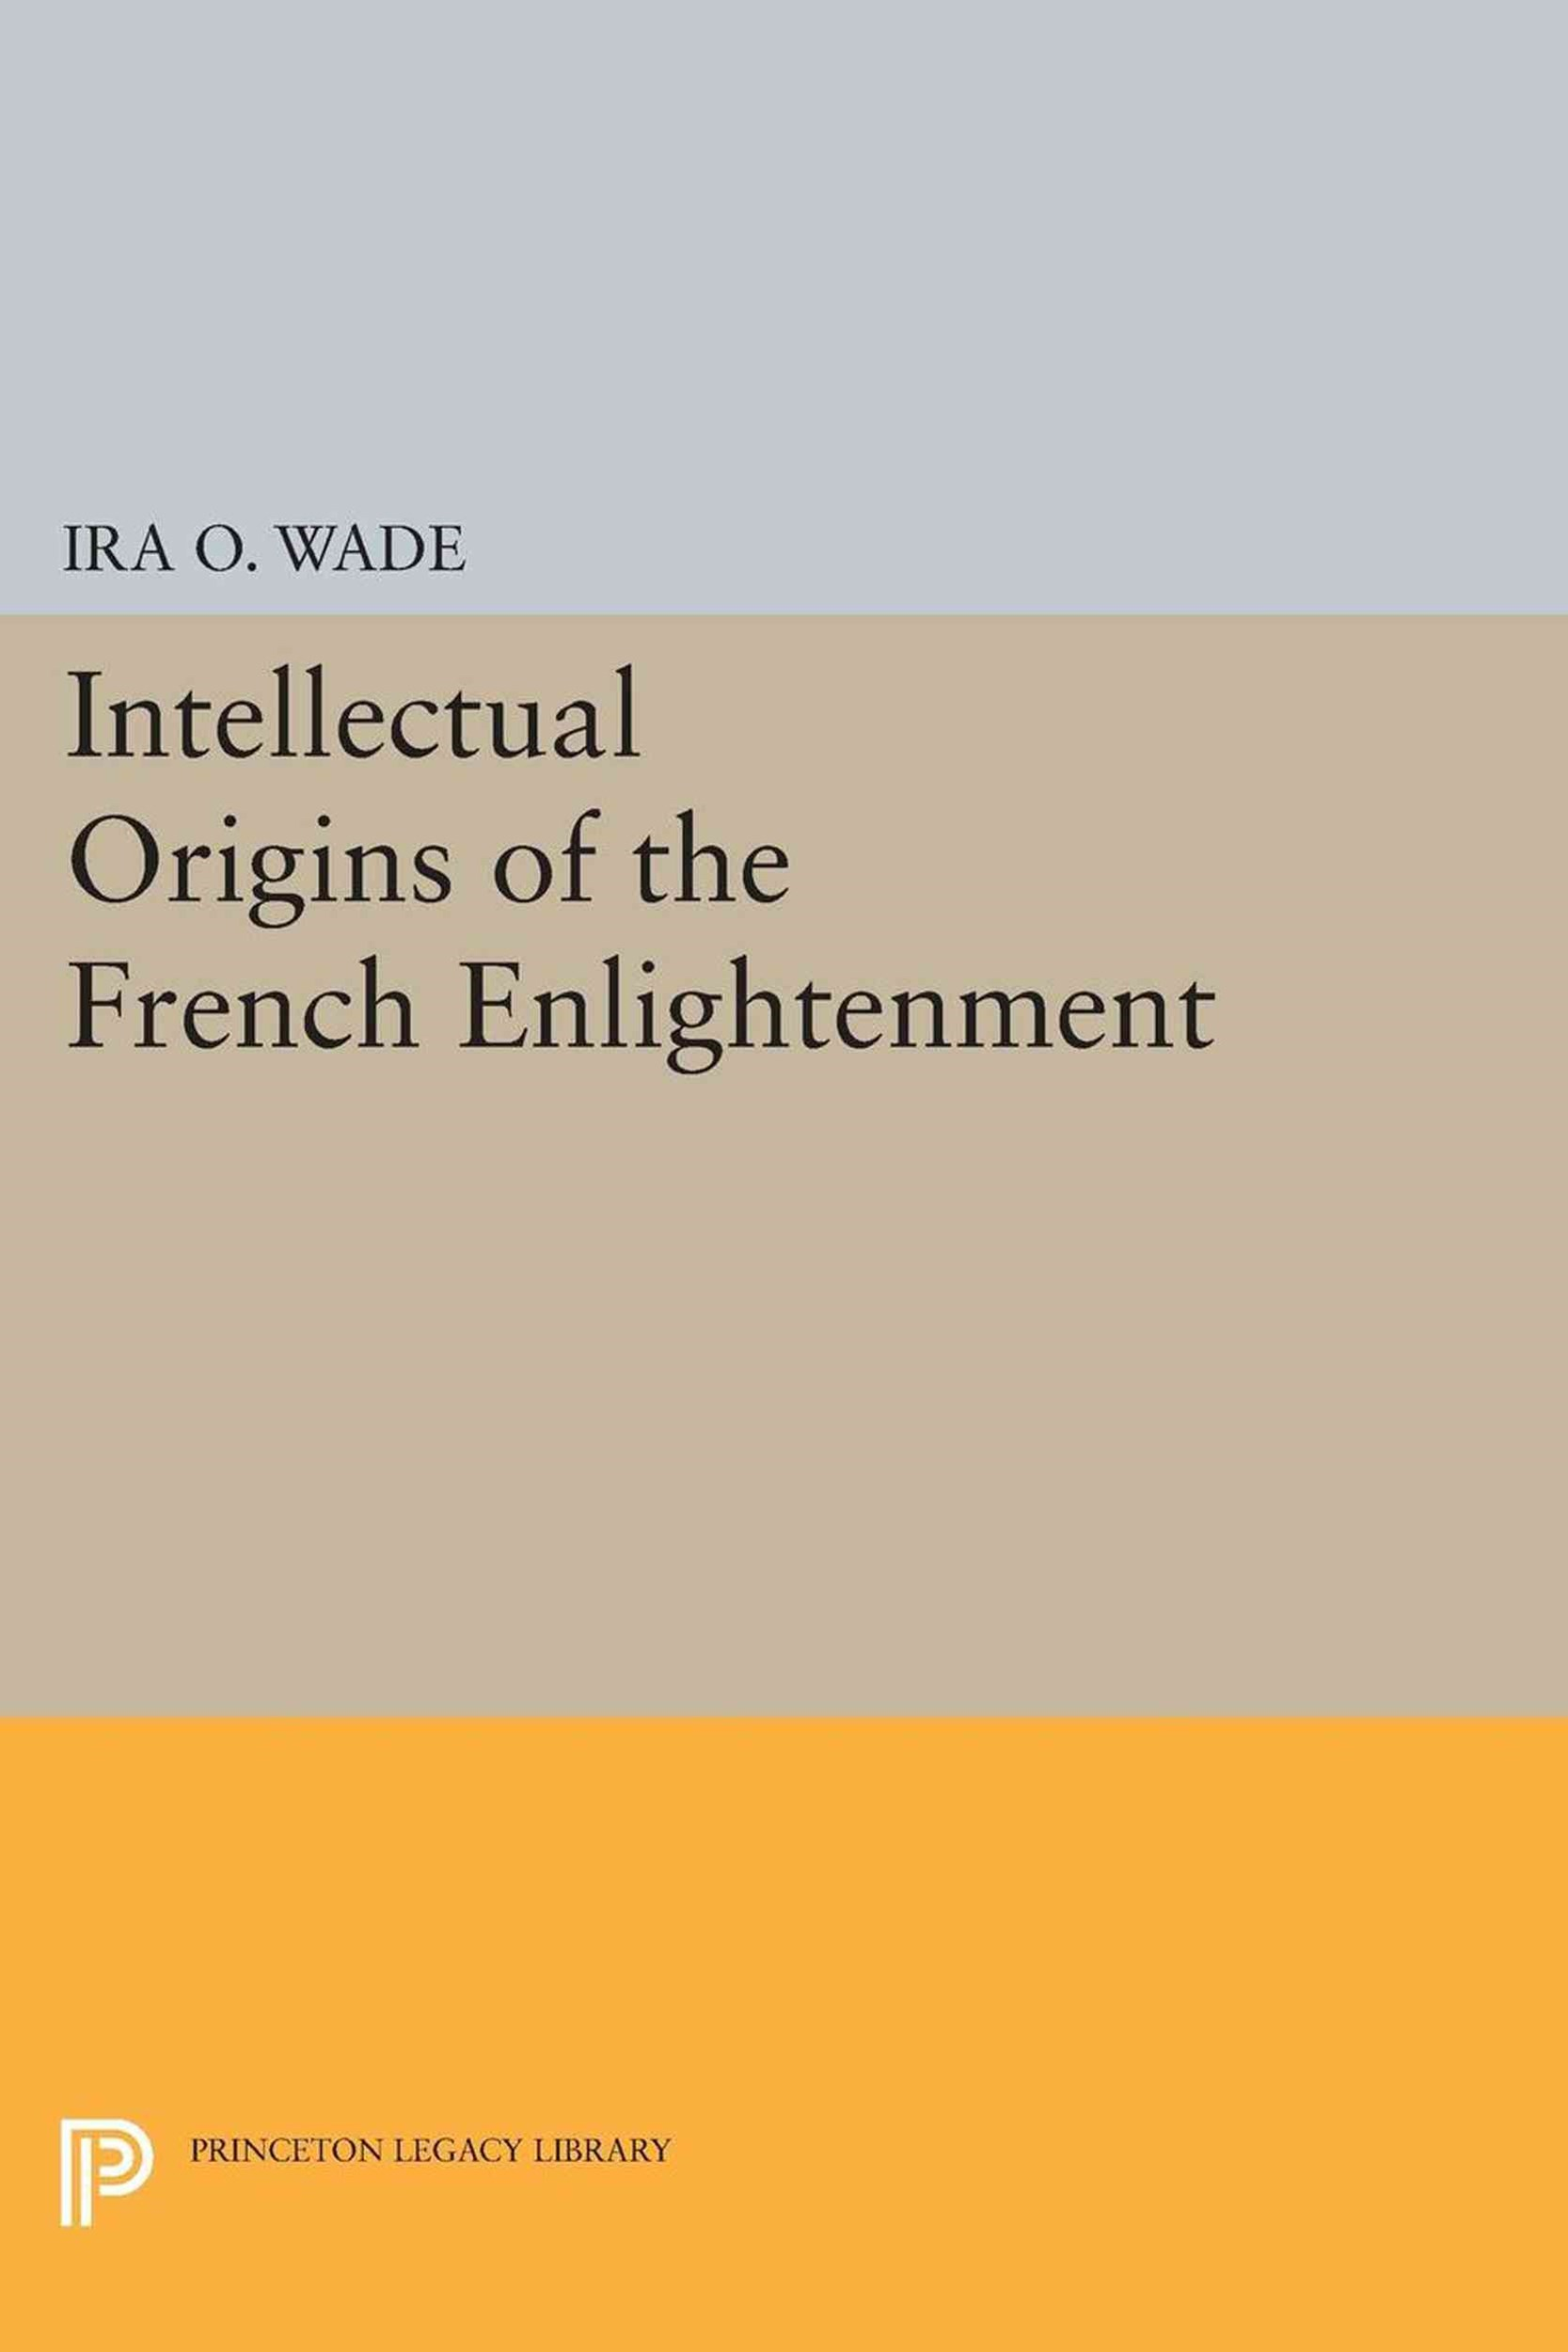 Intellectual Origins of the French Enlightenment